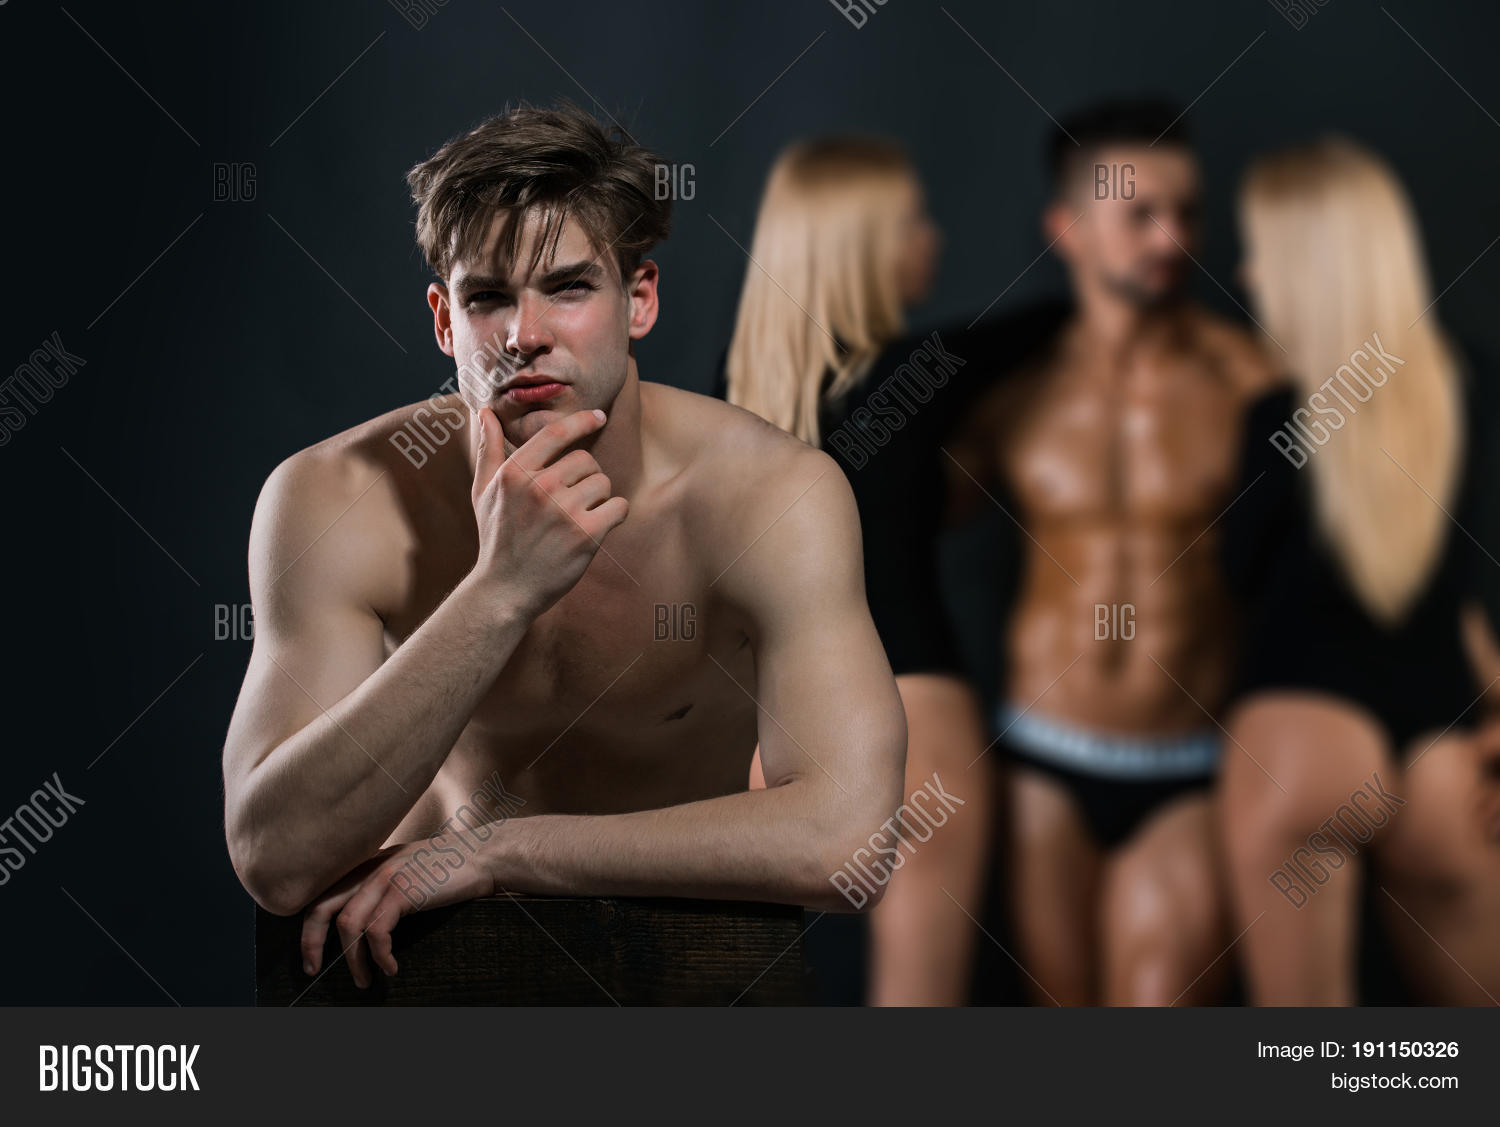 Thoughtful Man With Bare Chest Near Guy And Women Stock Photo ...